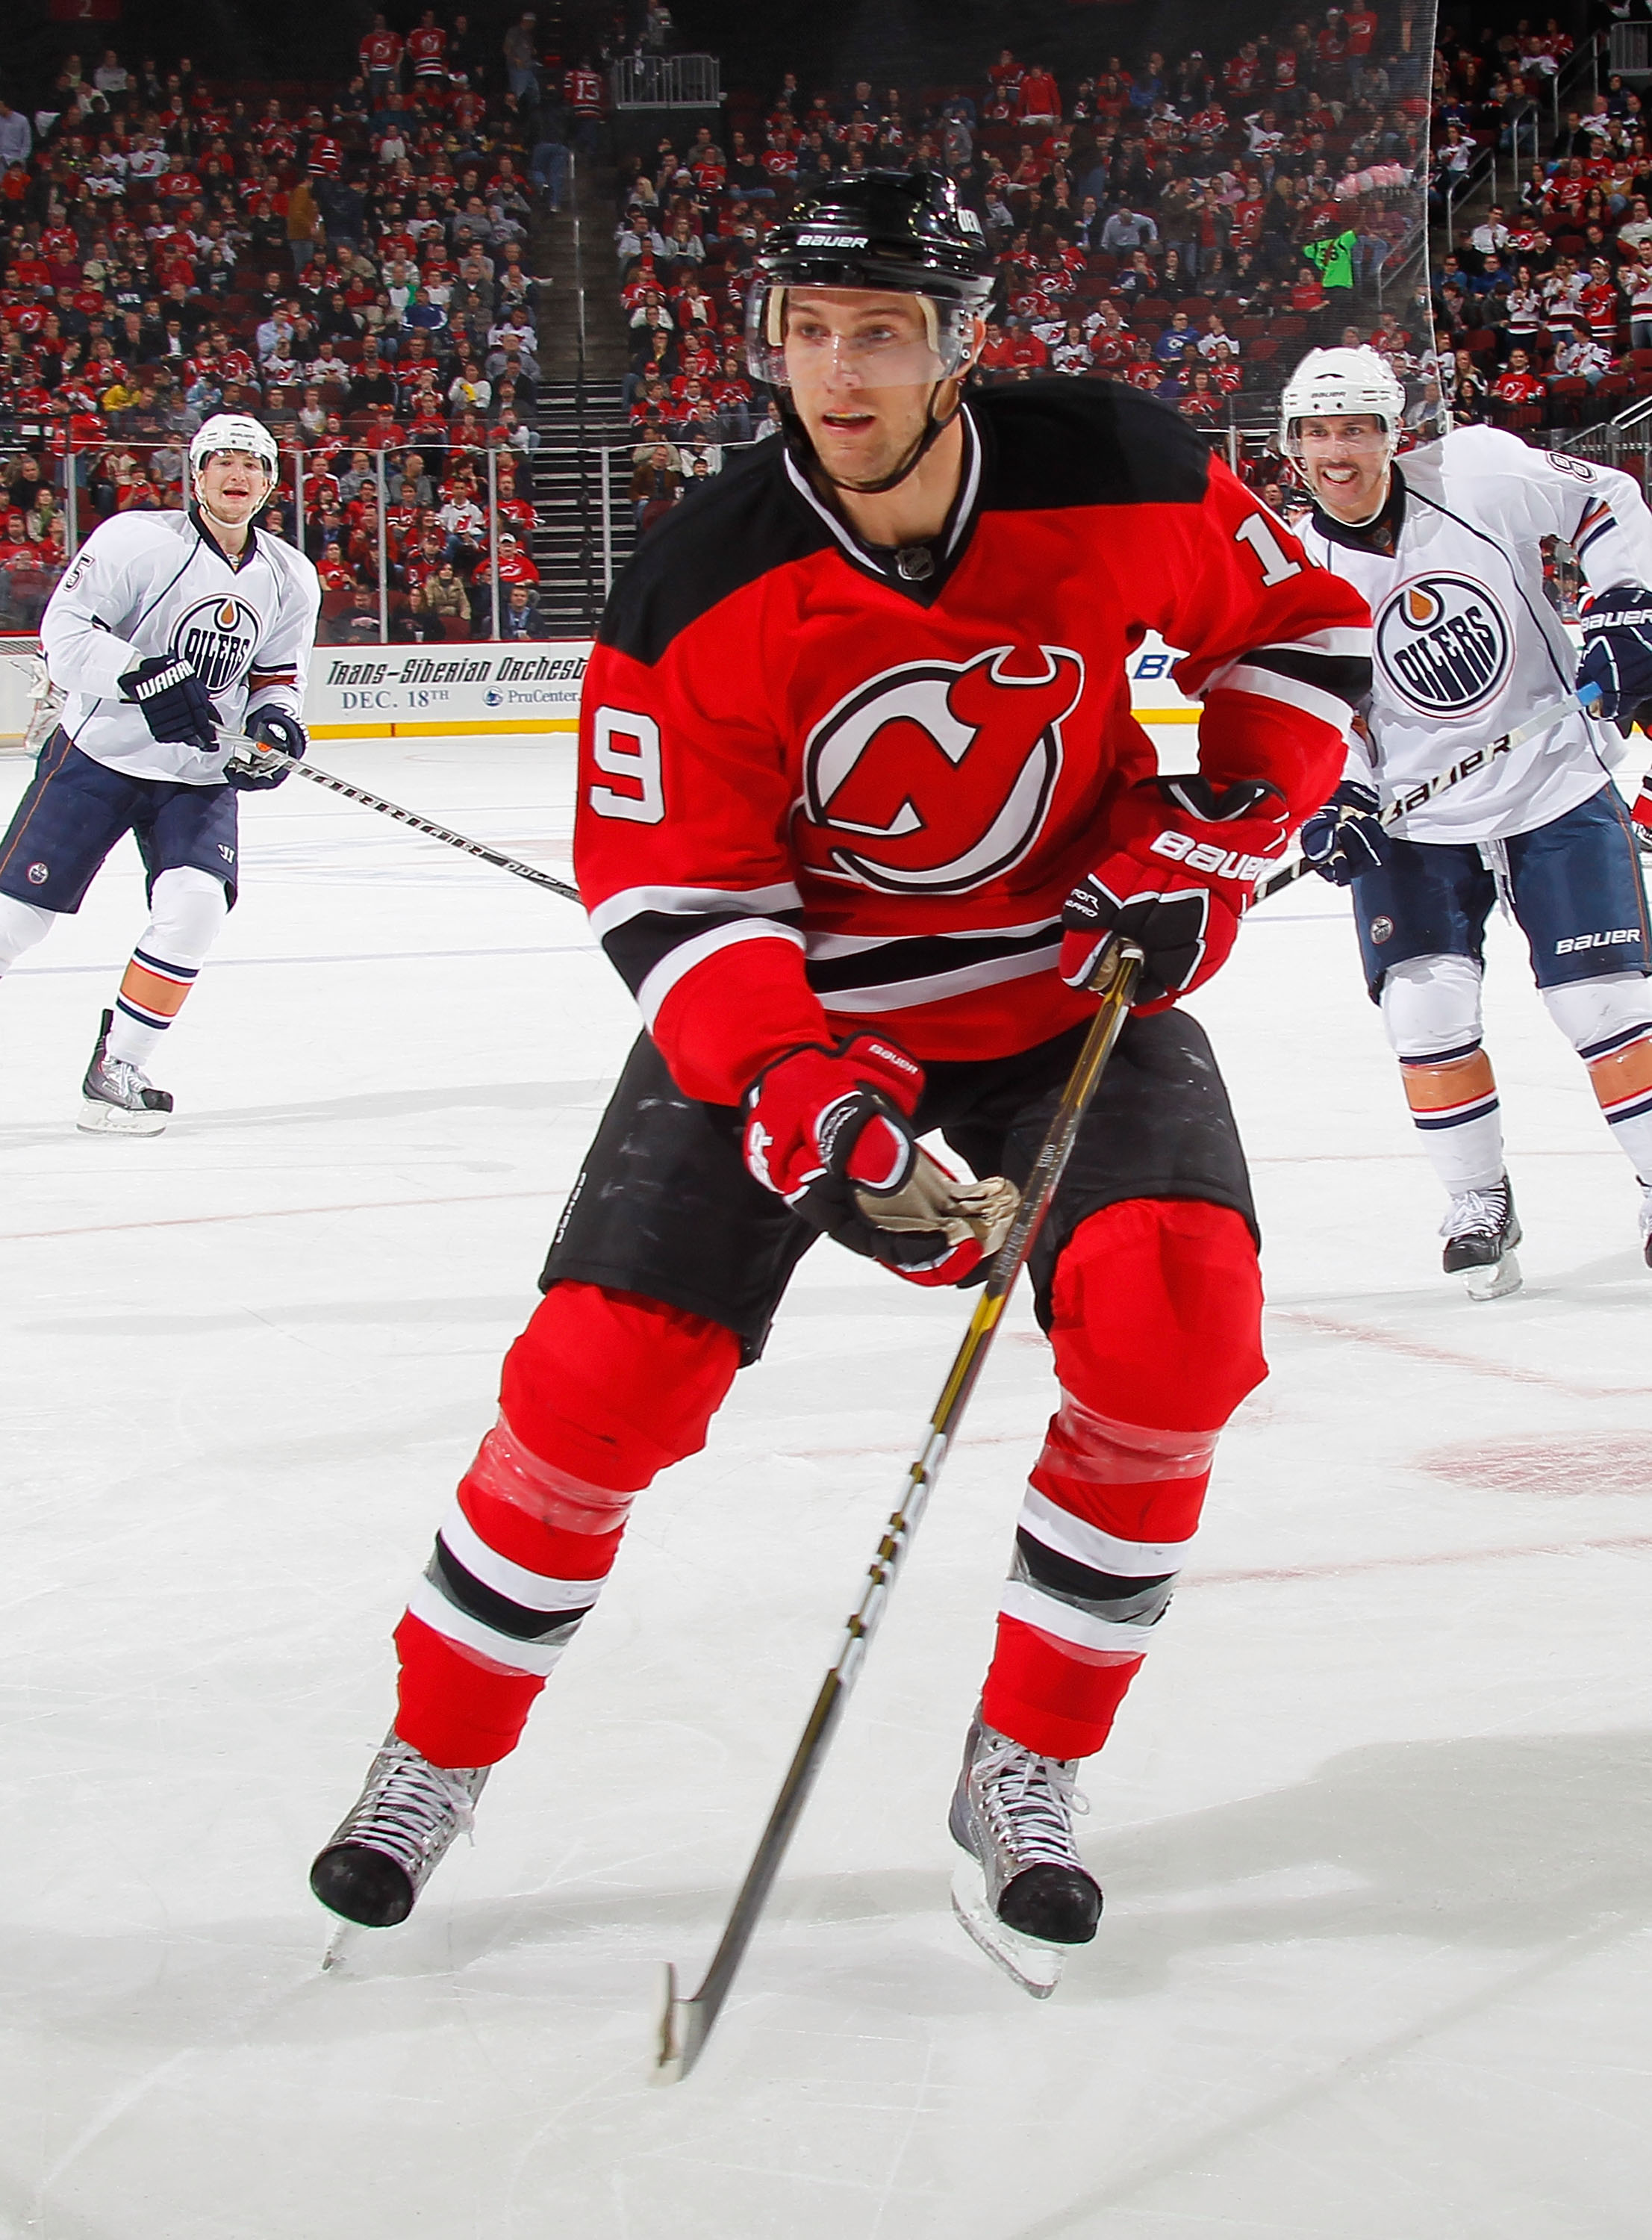 cf9a7699f21 New Jersey Devils: The Positives and Negatives | Bleacher Report ...